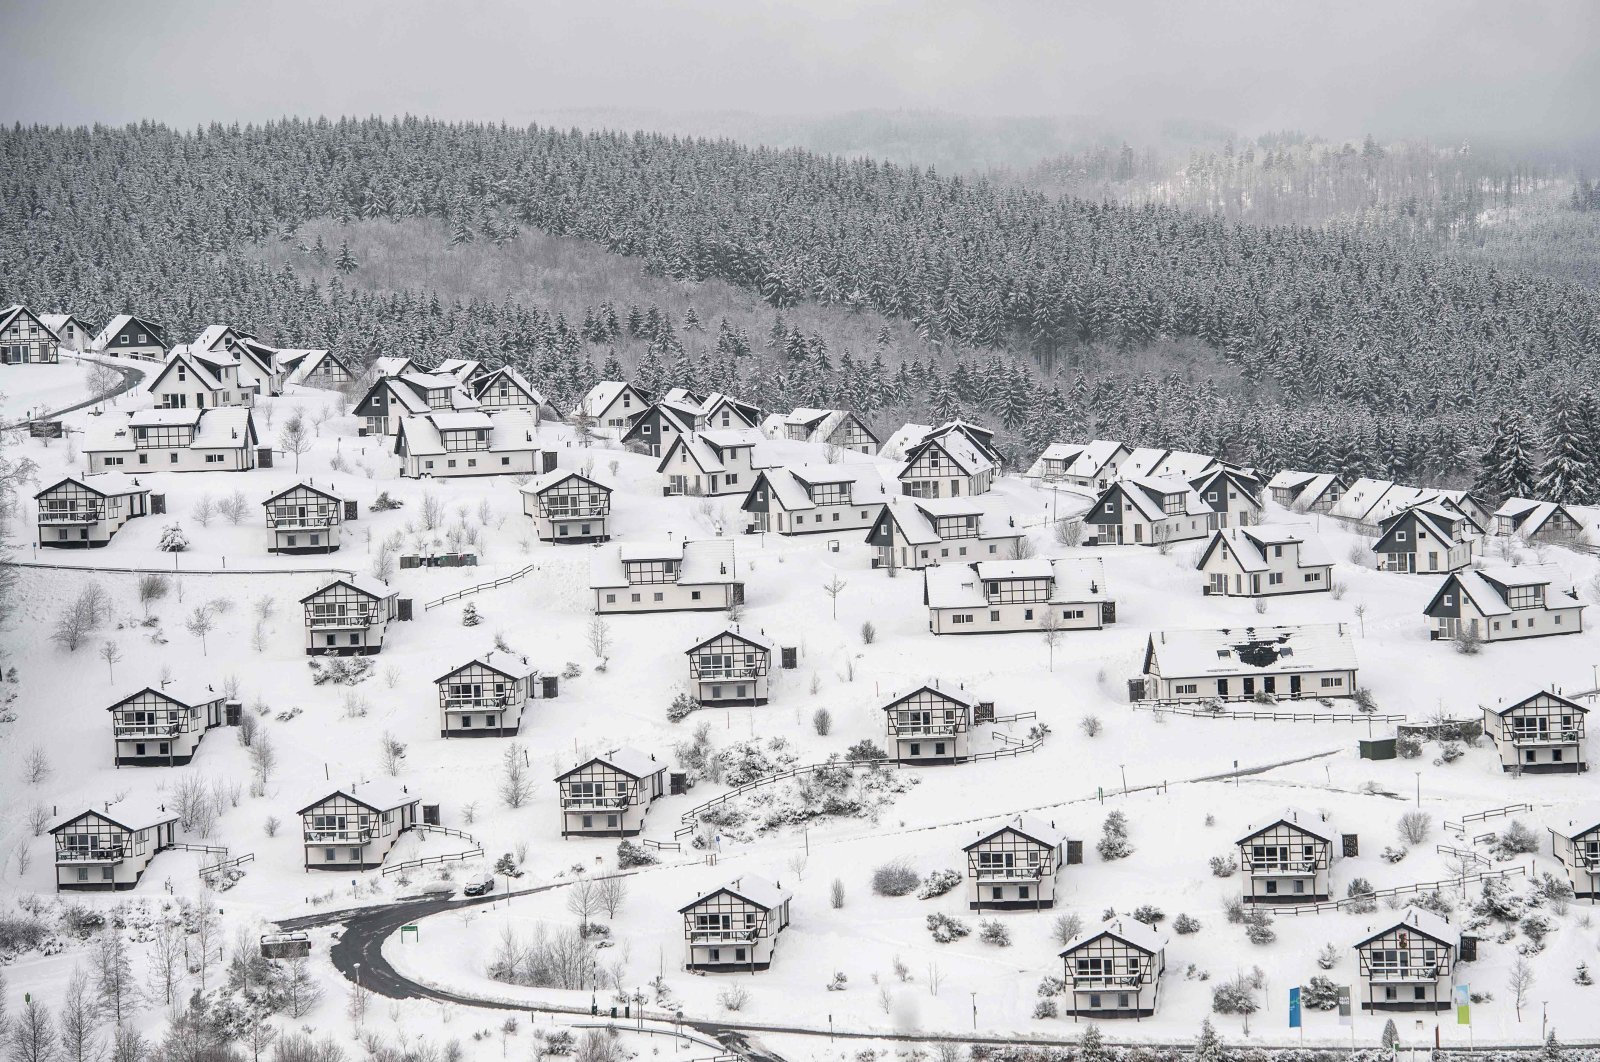 Vacation homes covered in snow in a holiday park, Winterberg, western Germany, Jan. 1, 2021. (AFP Photo)